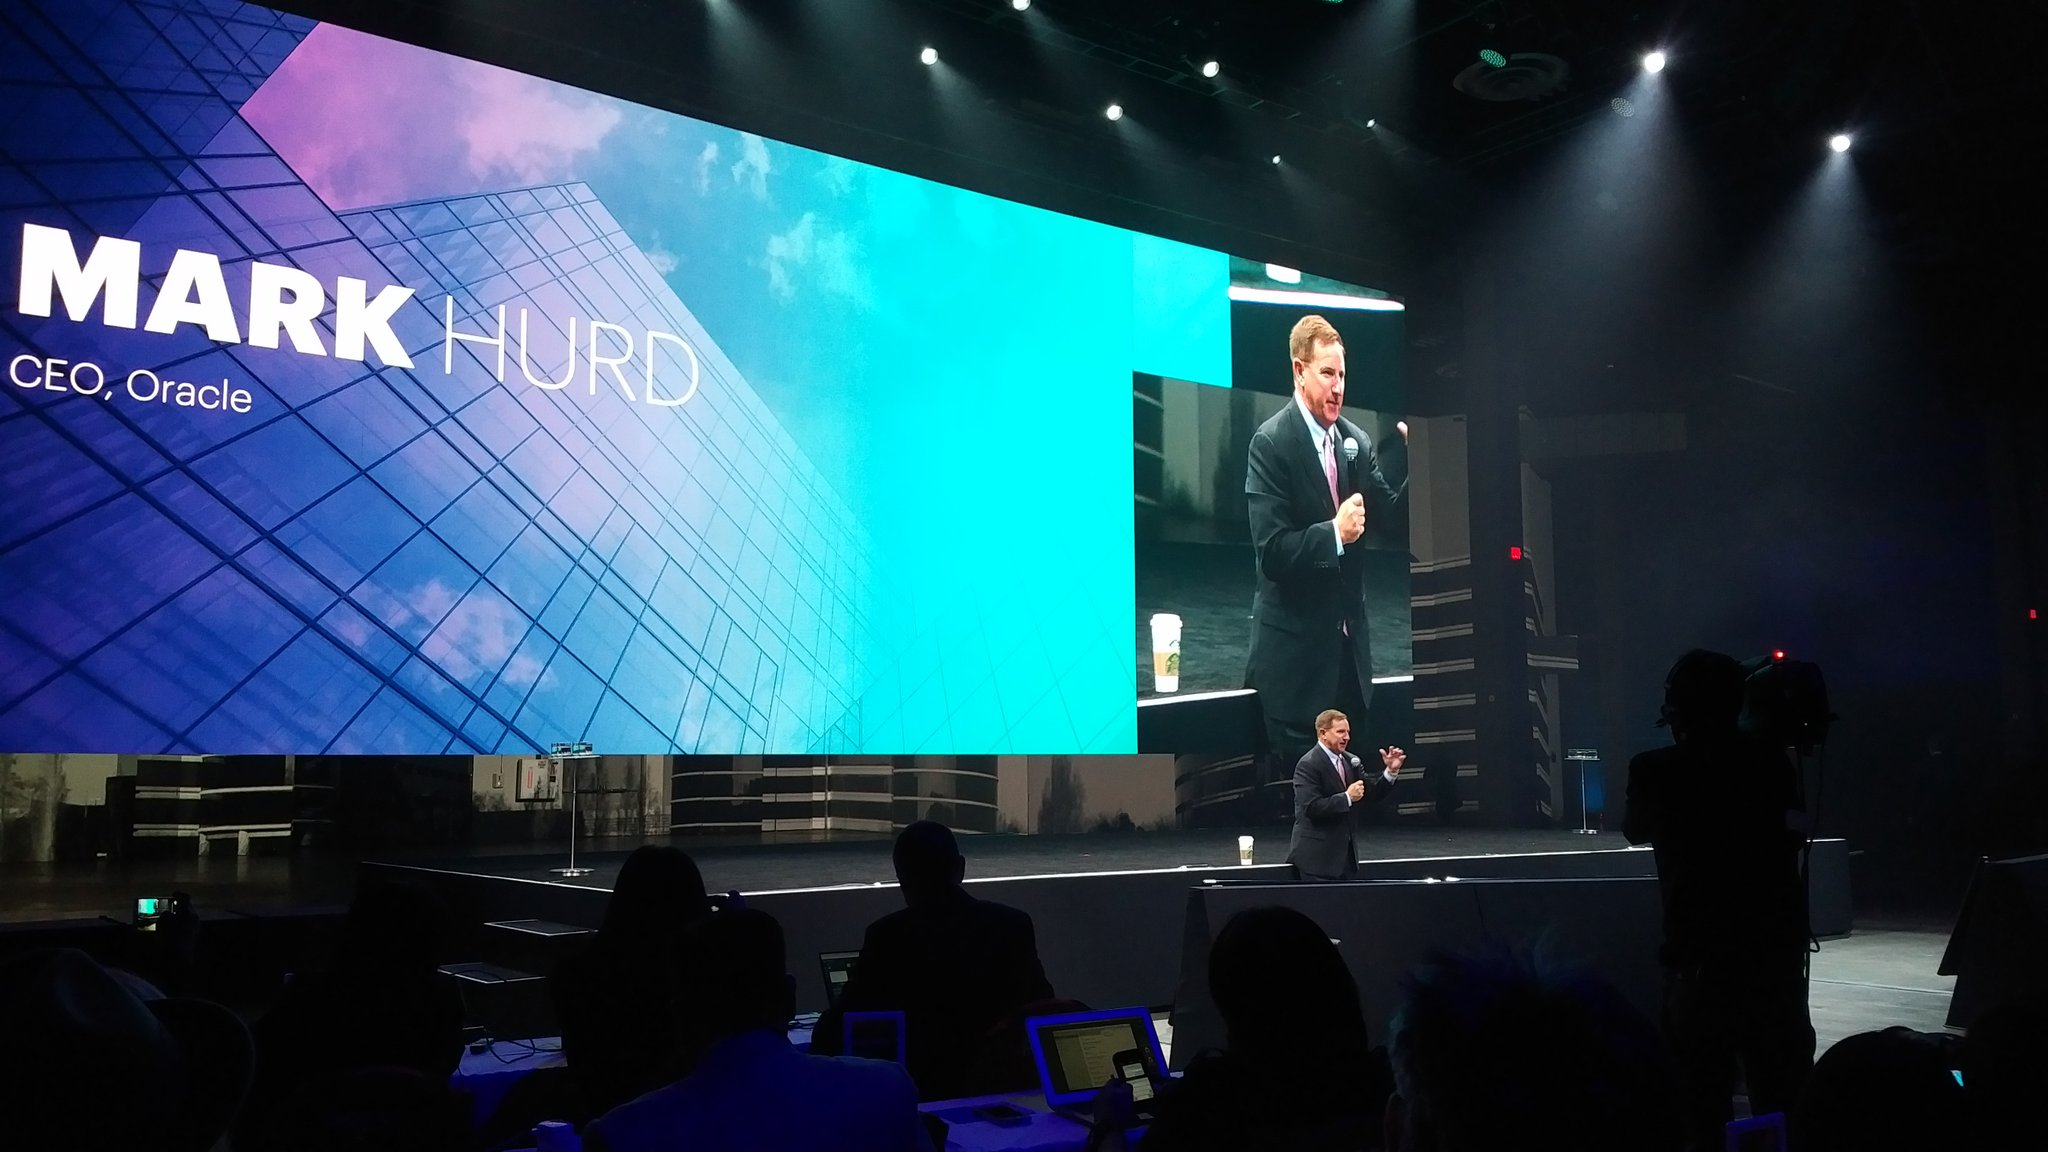 Next up - @MarkVHurd on why @Oracle bought @NetSuite - @Starbucks in hand. #SuiteWorld17 https://t.co/wV5pVt3C5Q